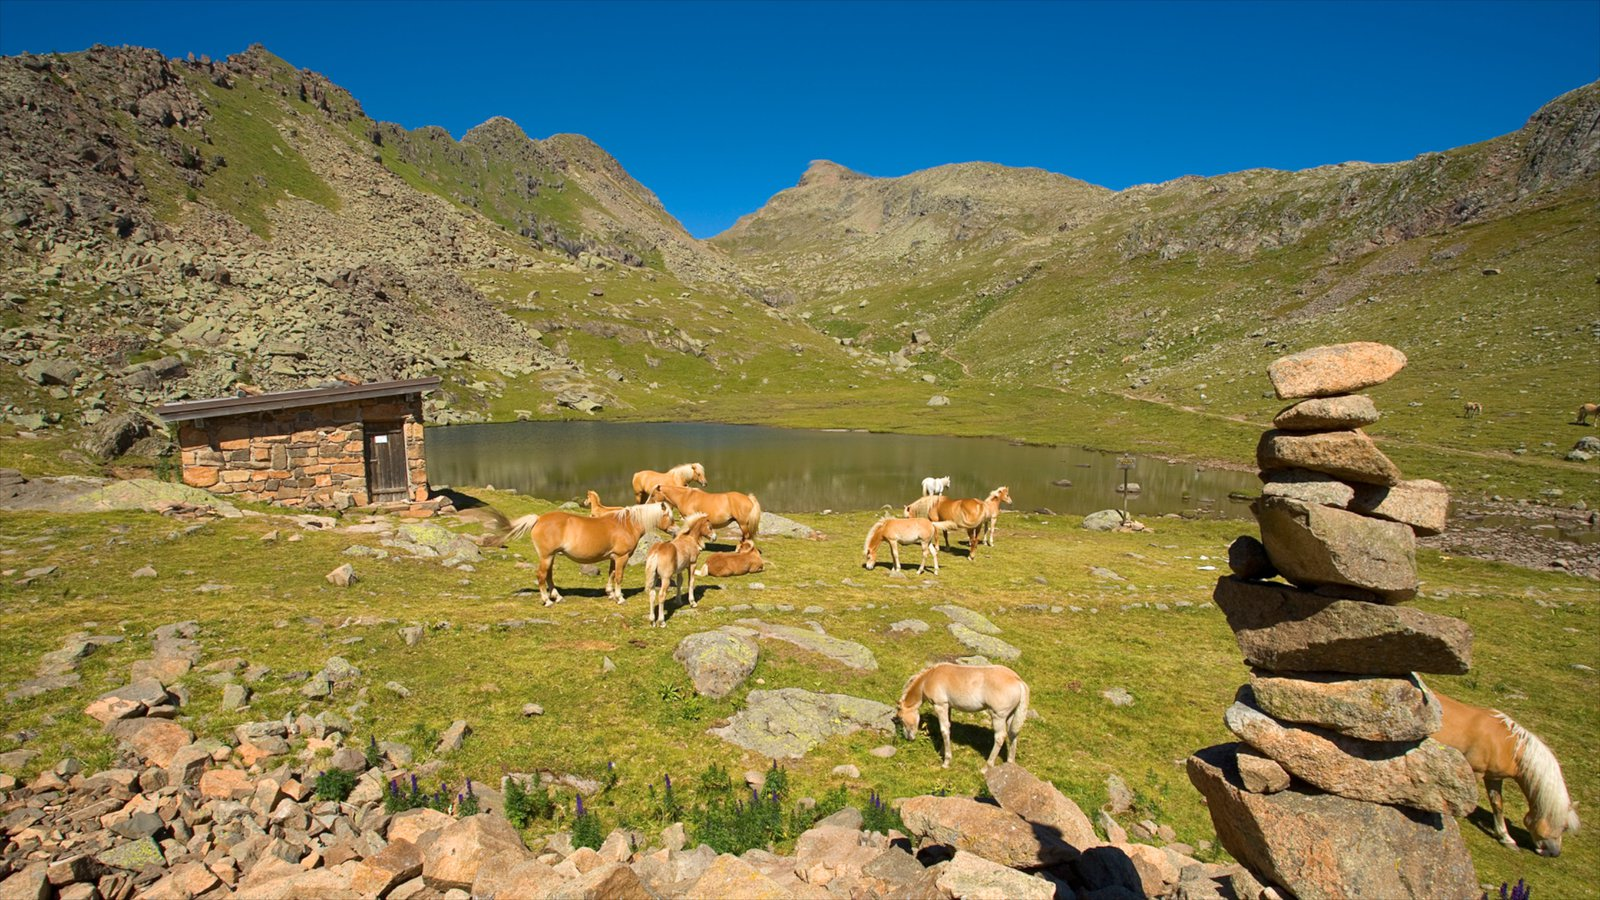 Fassa Valley which includes tranquil scenes, land animals and a pond